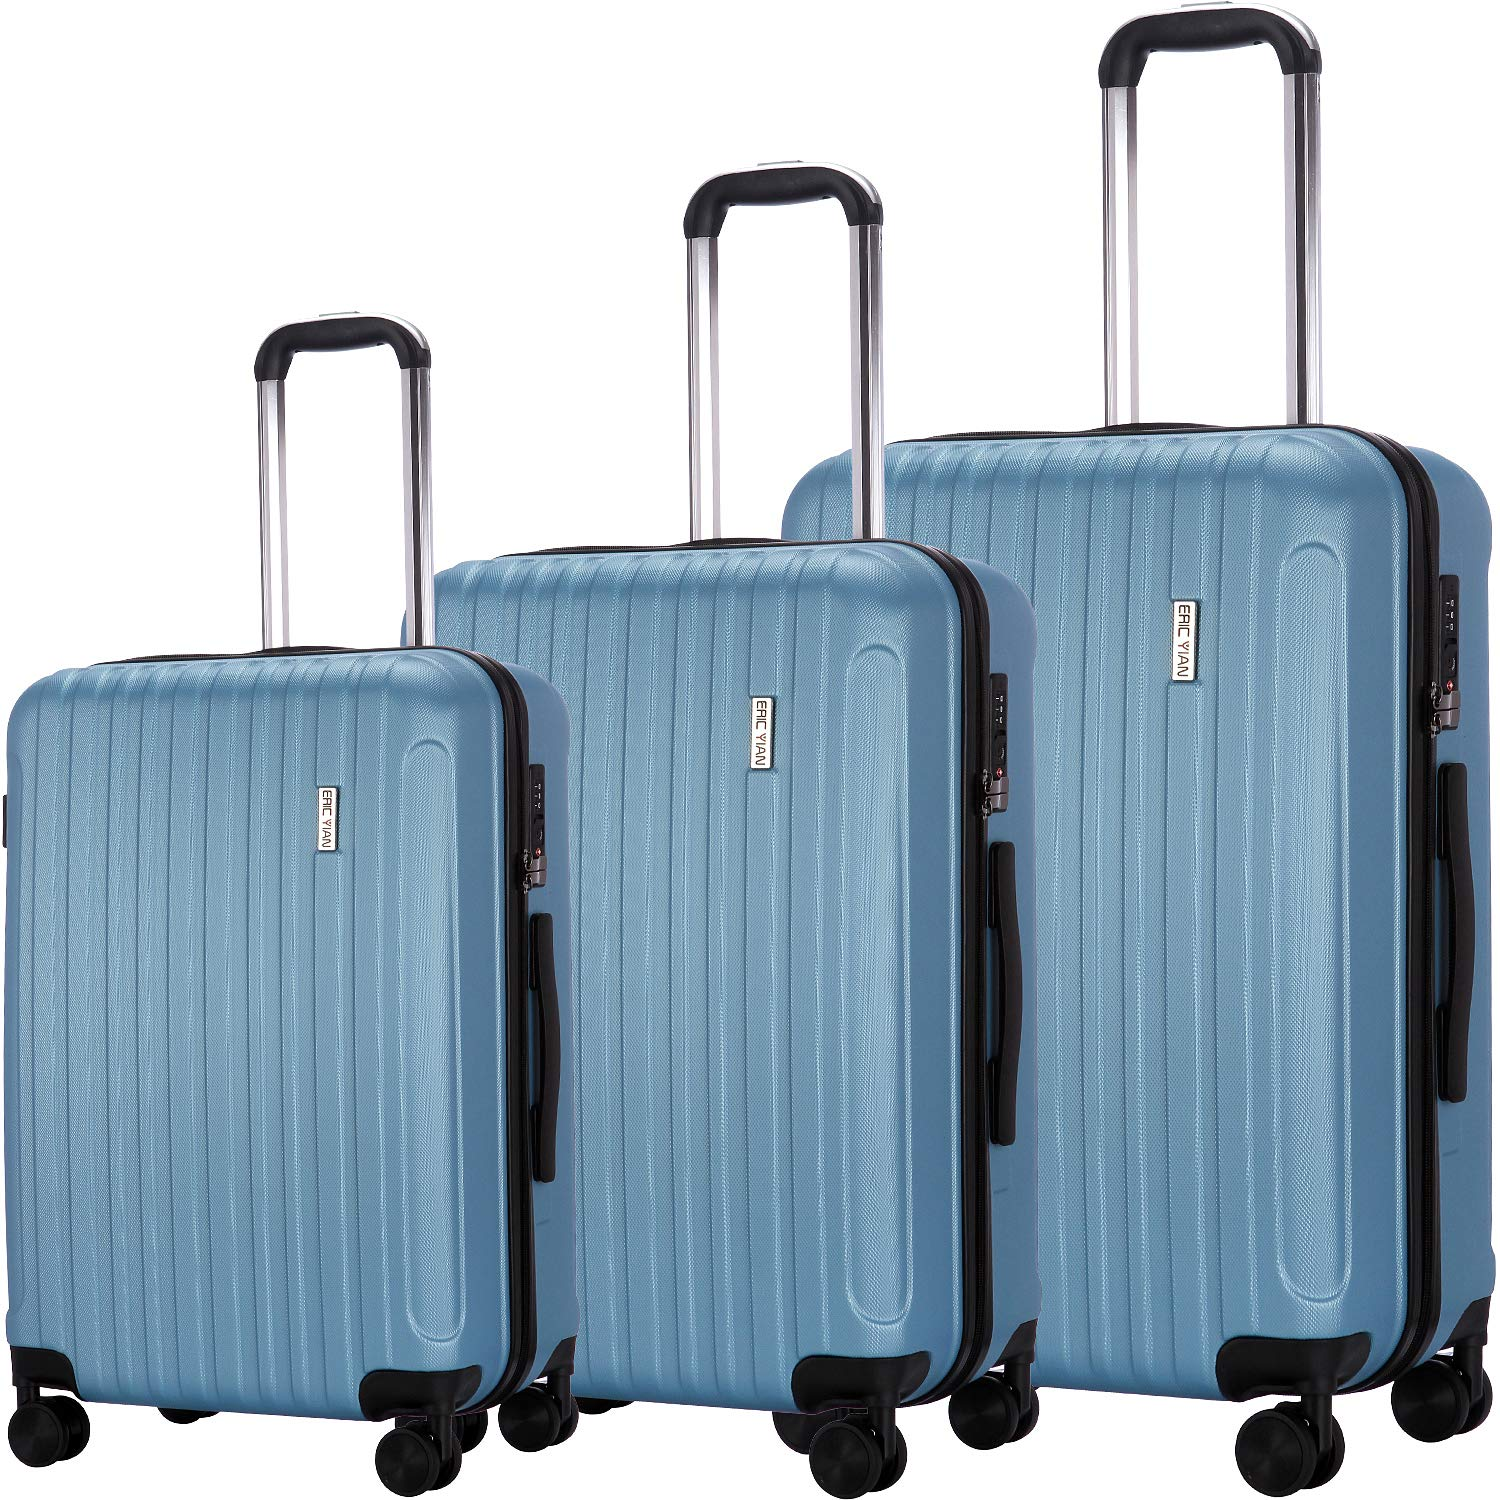 Luggage Set 3 Piece Suitcase ABS Trolley Spinner Hardshell Lightweight Suitcases TSA by ERIC YIAN